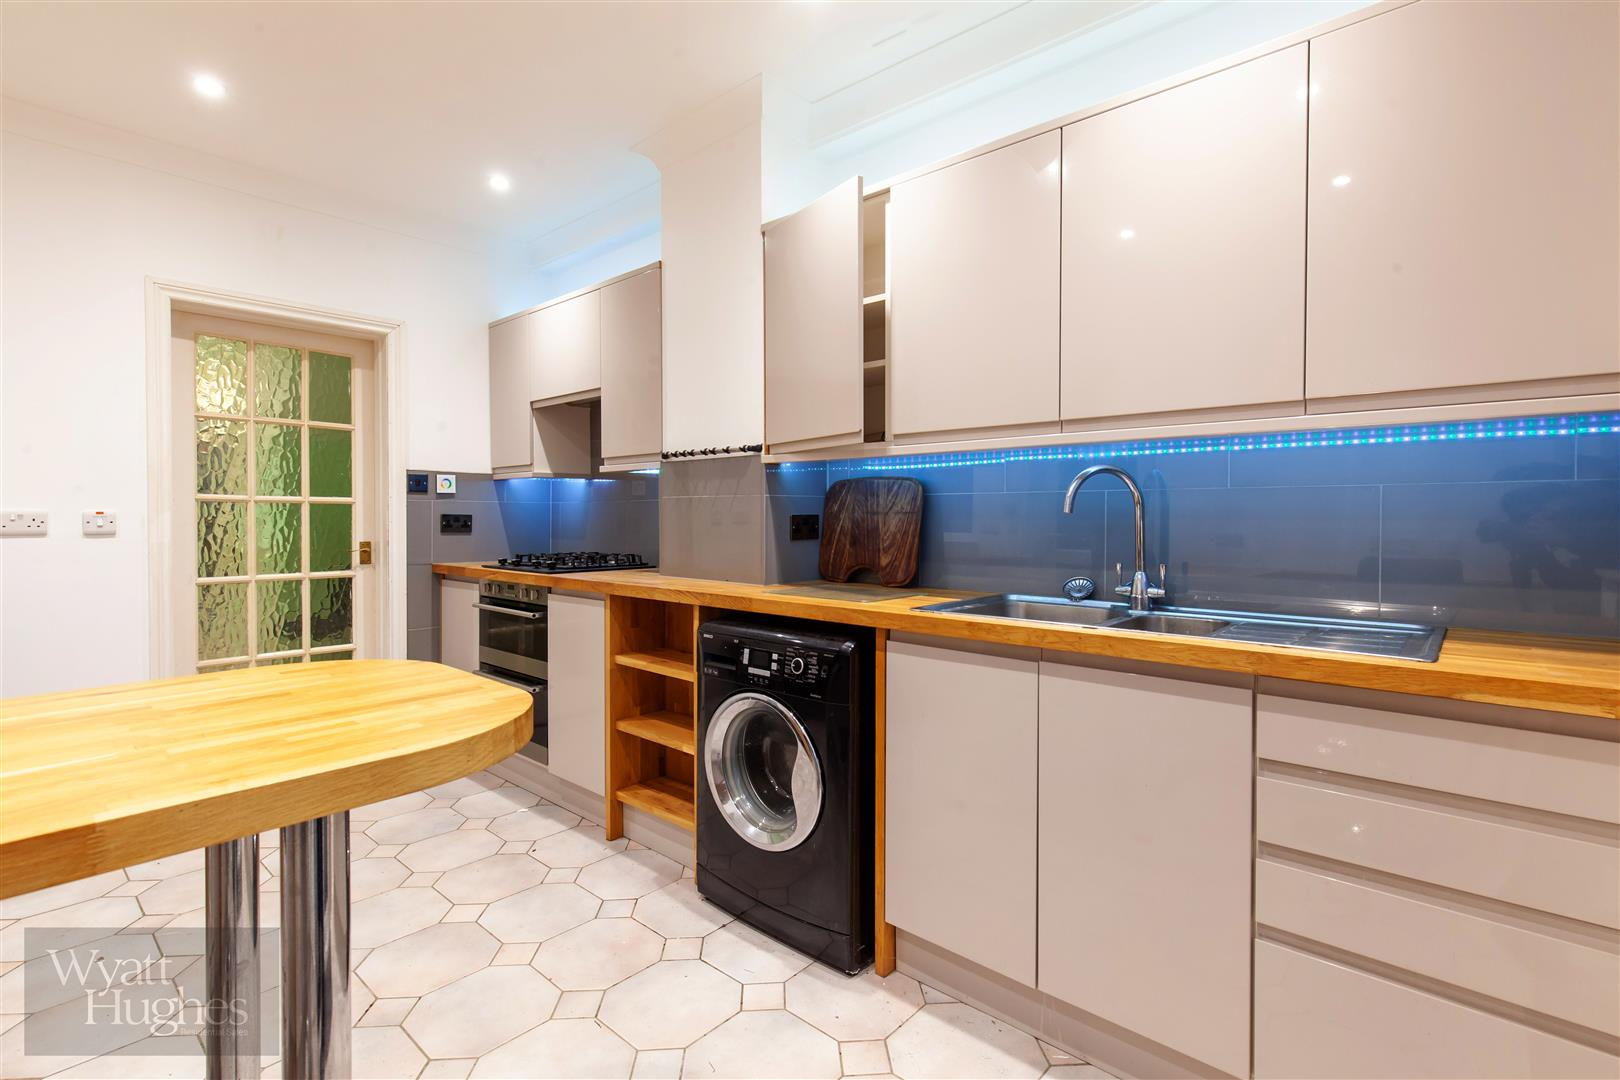 3 bed end-of-terrace-house for sale in Burry Road, St. Leonards-On-Sea  - Property Image 3